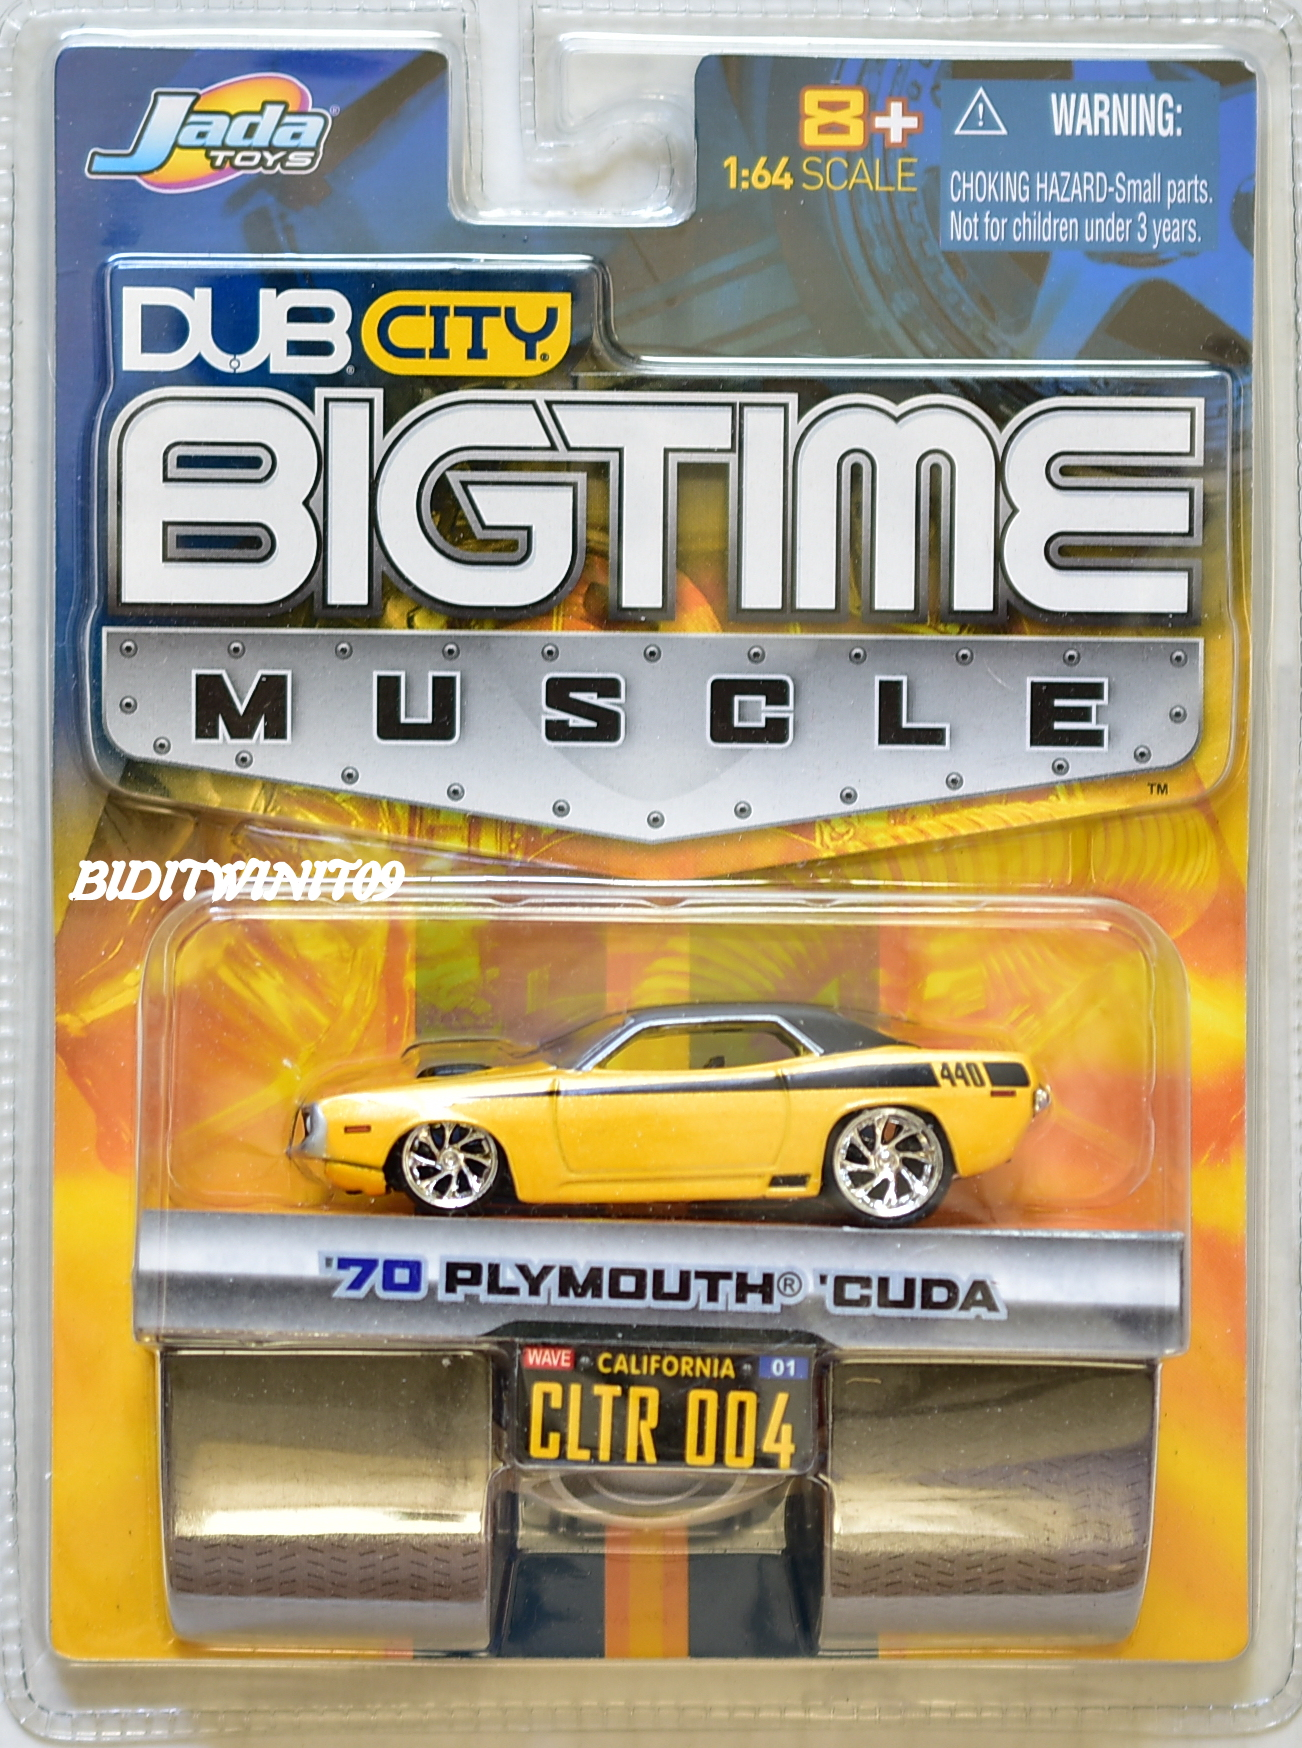 JADA DUB CITY BIGTIME MUSCLE '70 PLYMOUTH CUDA CLTR 004 YELLOW